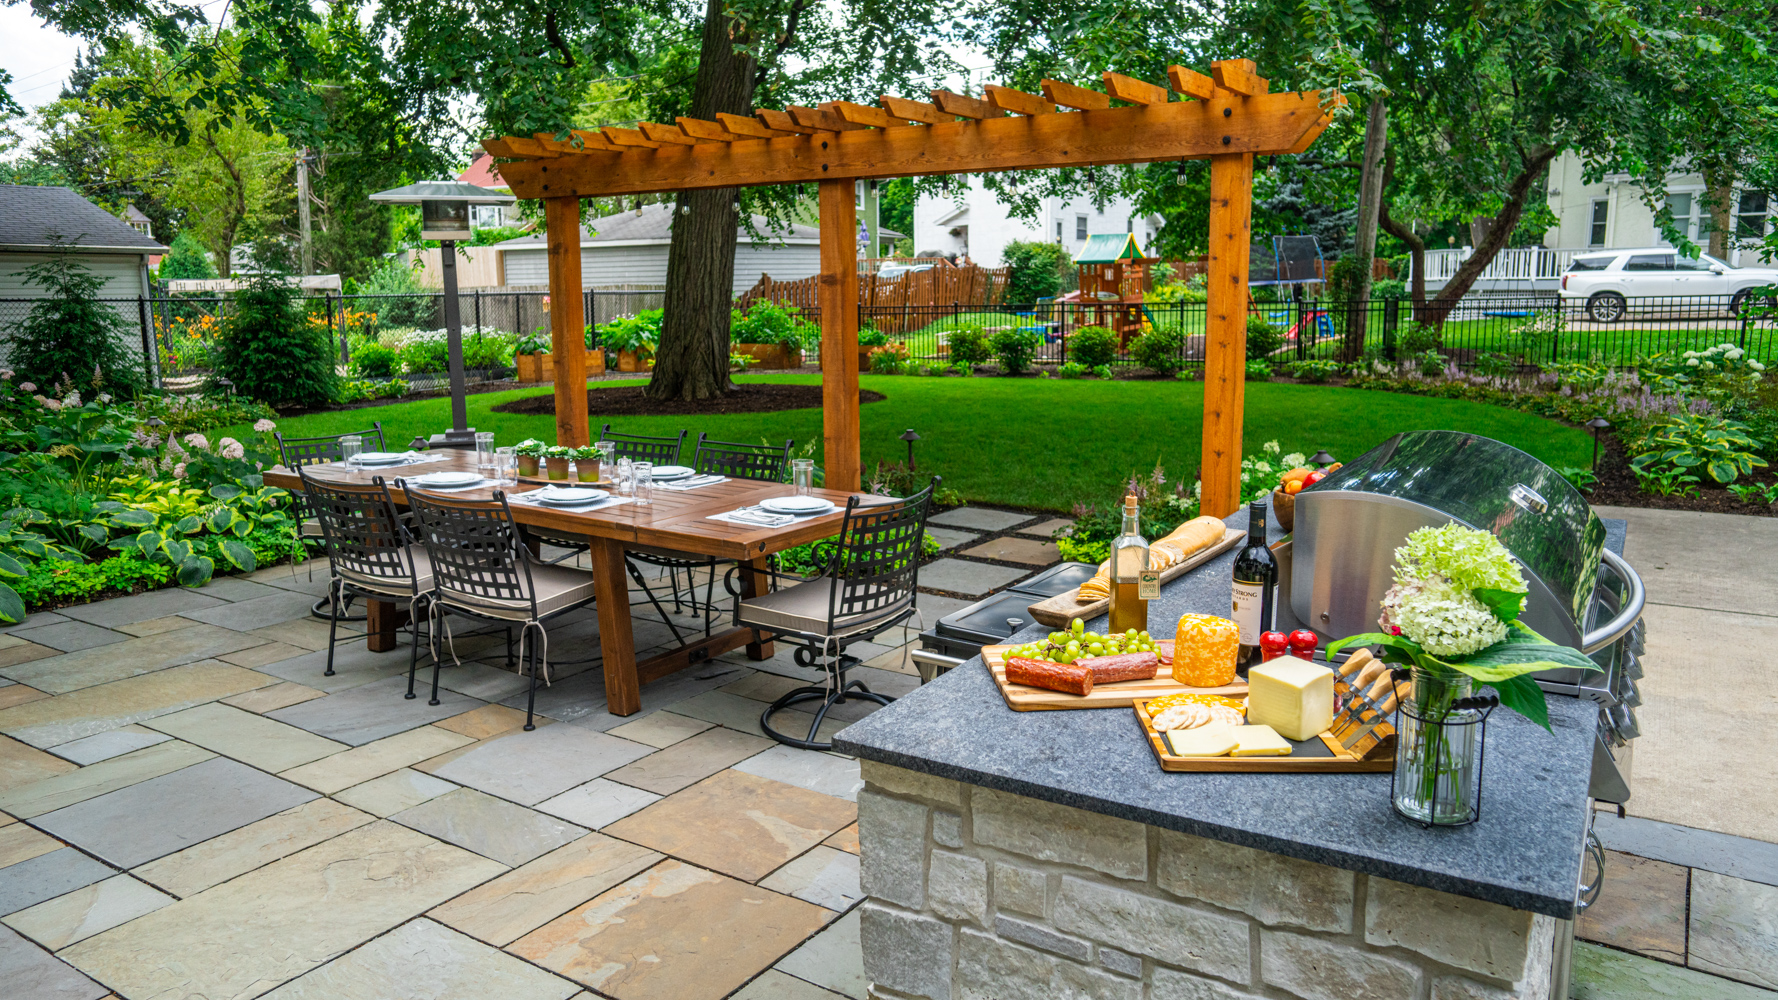 Patio, outdoor kitchen, and yard